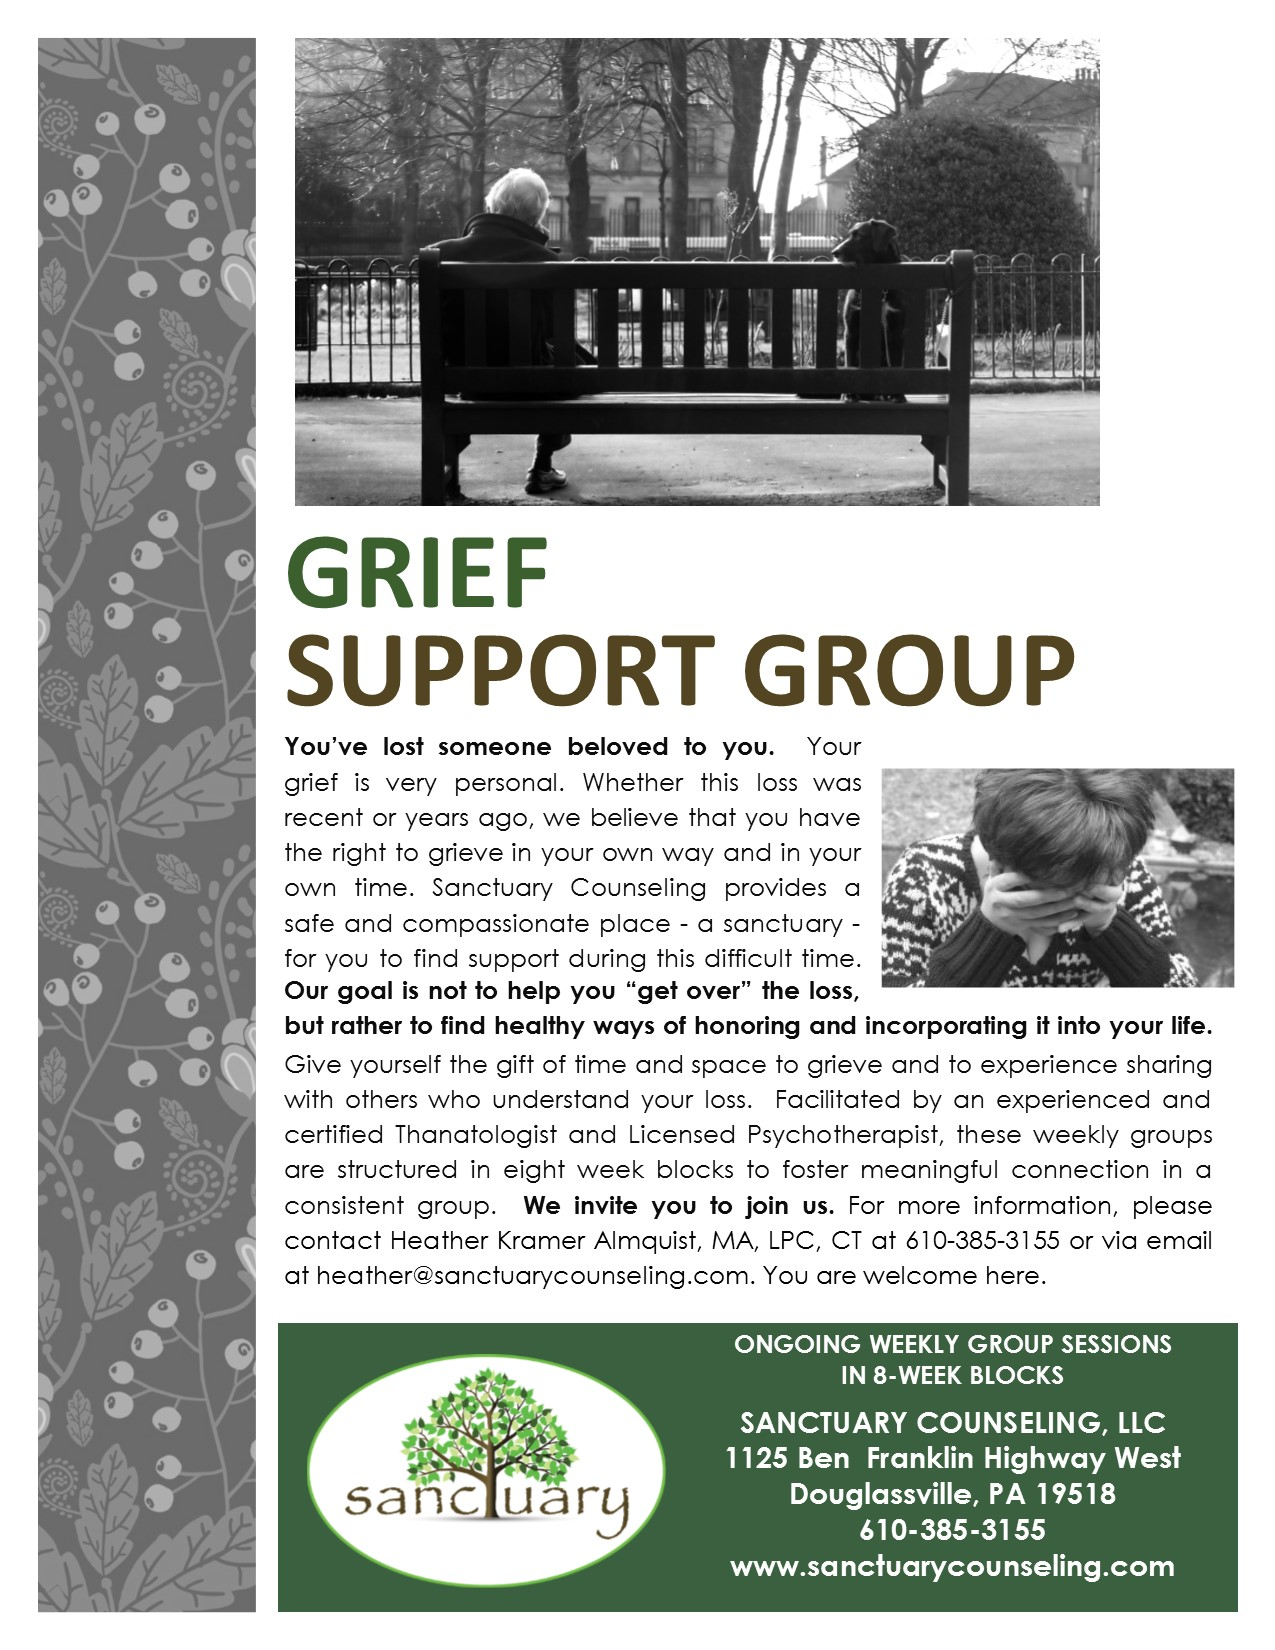 Adult Grief Support Group Flyer